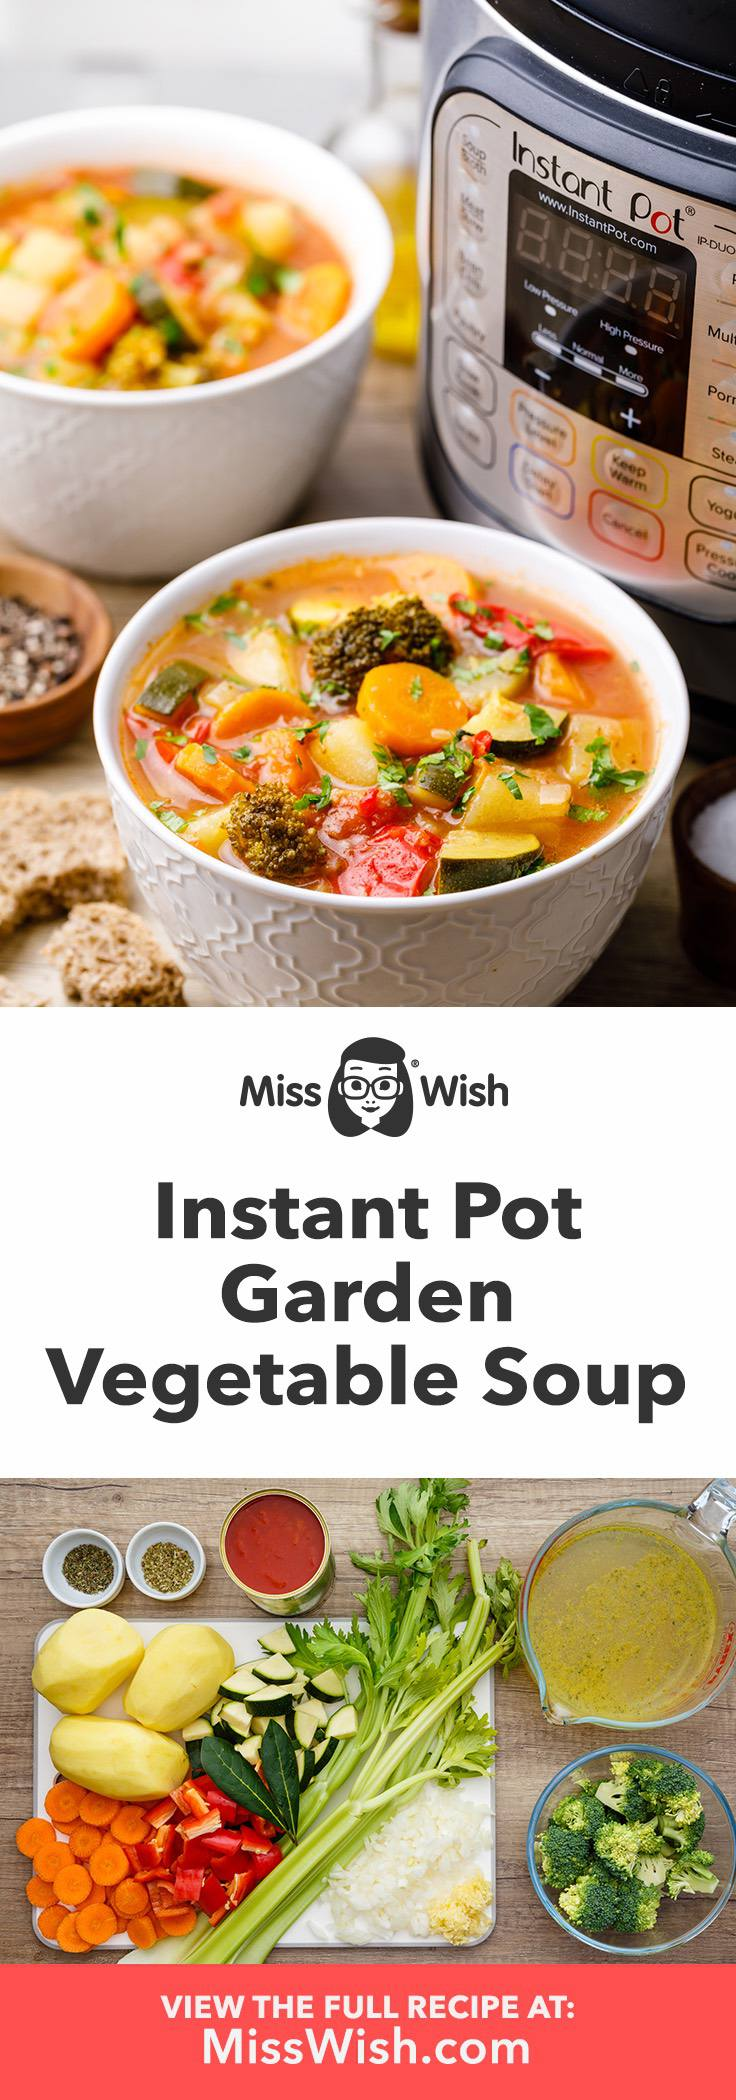 Instant Pot Garden Vegetable Soup with Fresh Vegetables